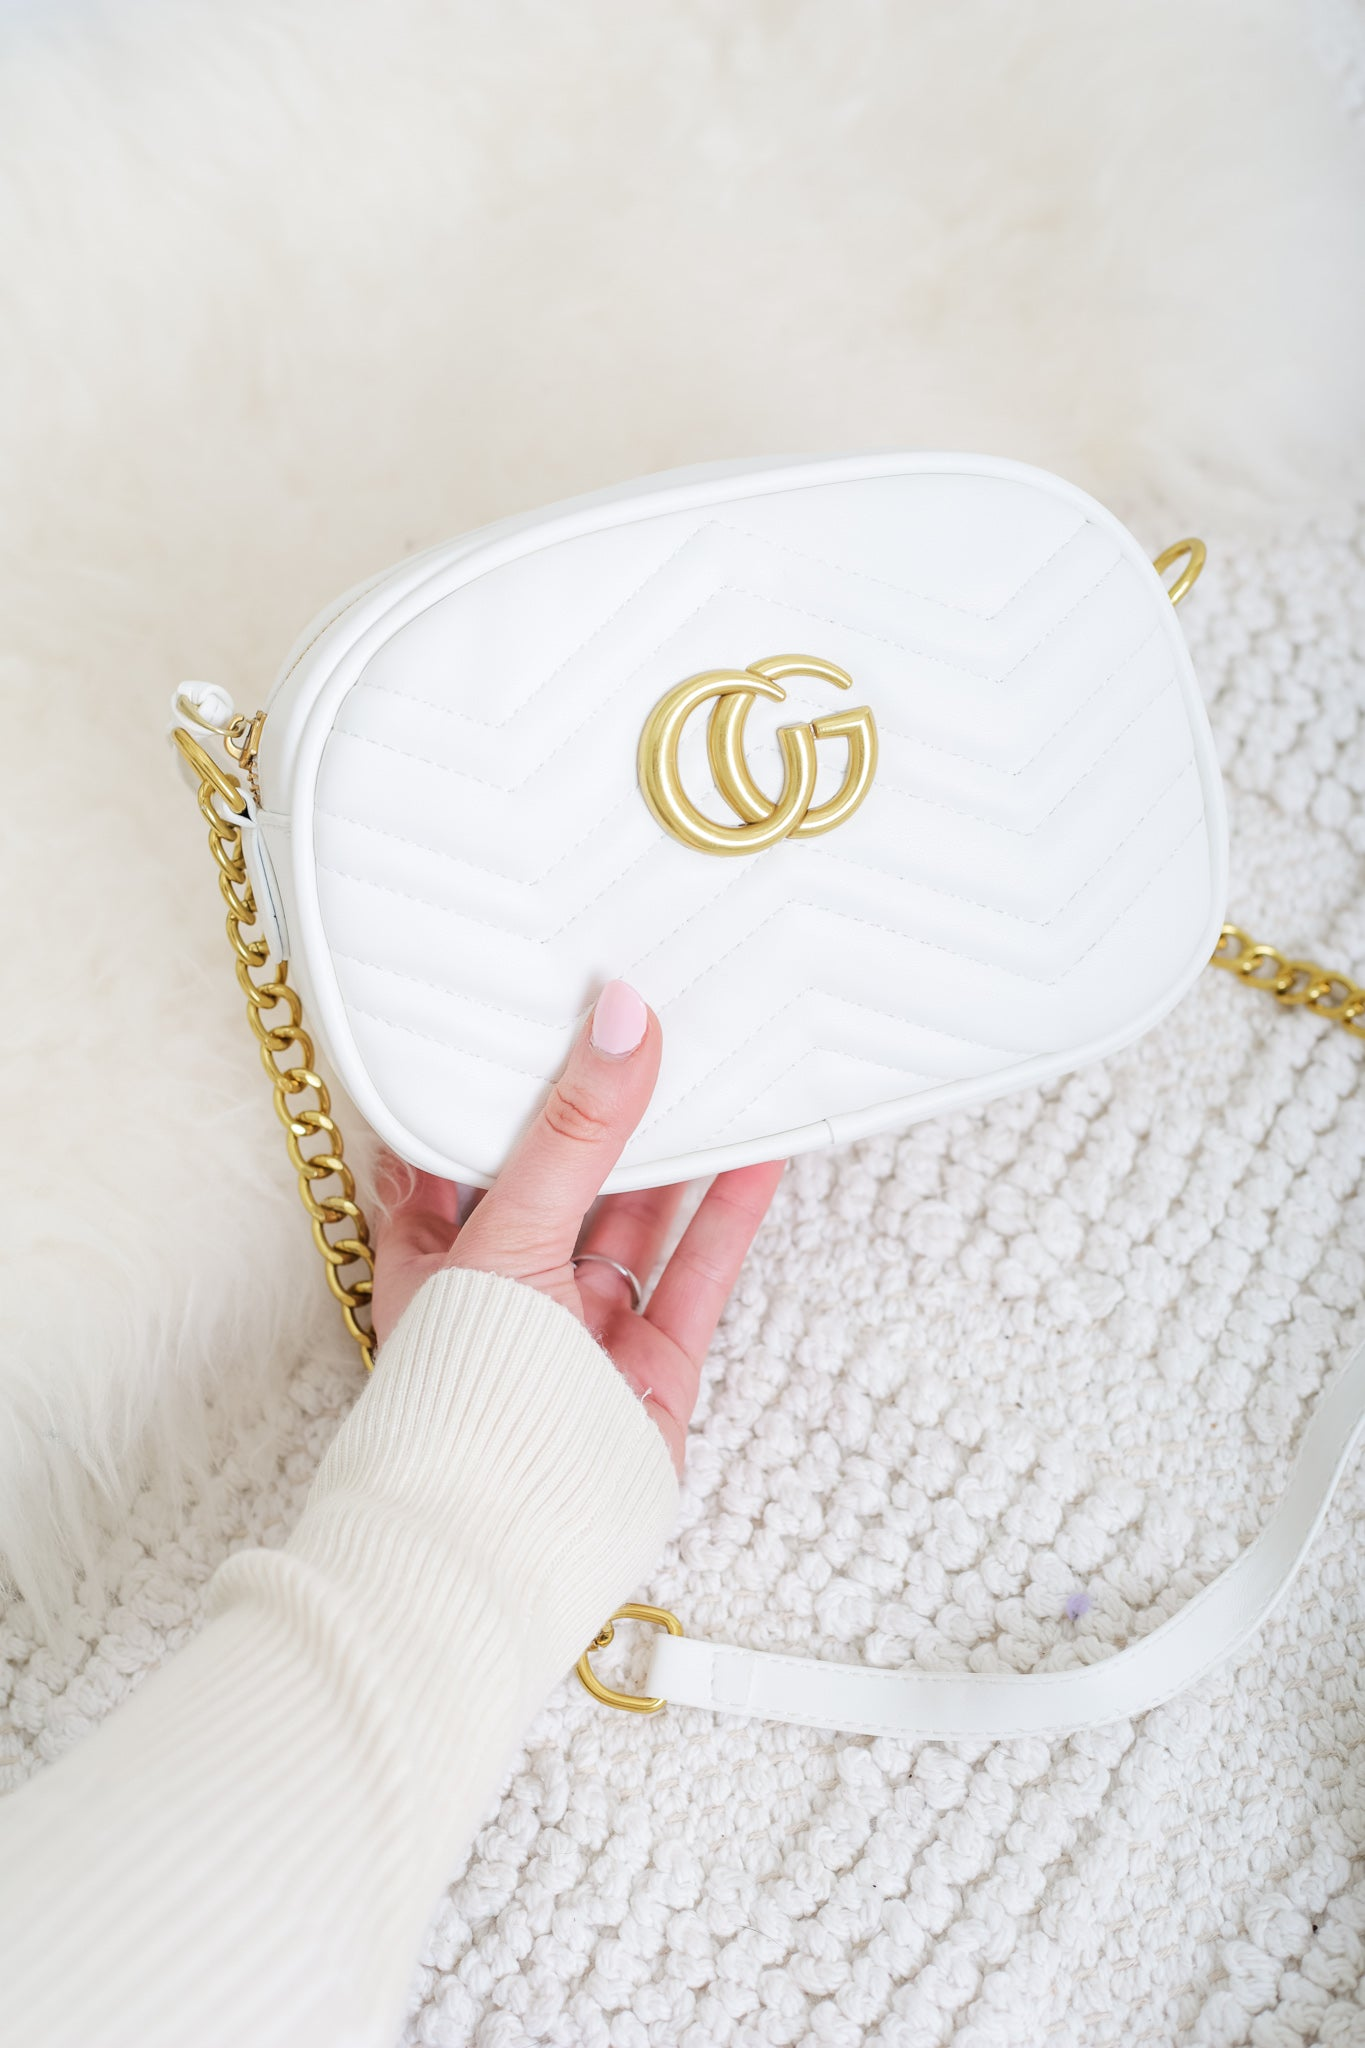 Gee We Love This Handbag - White